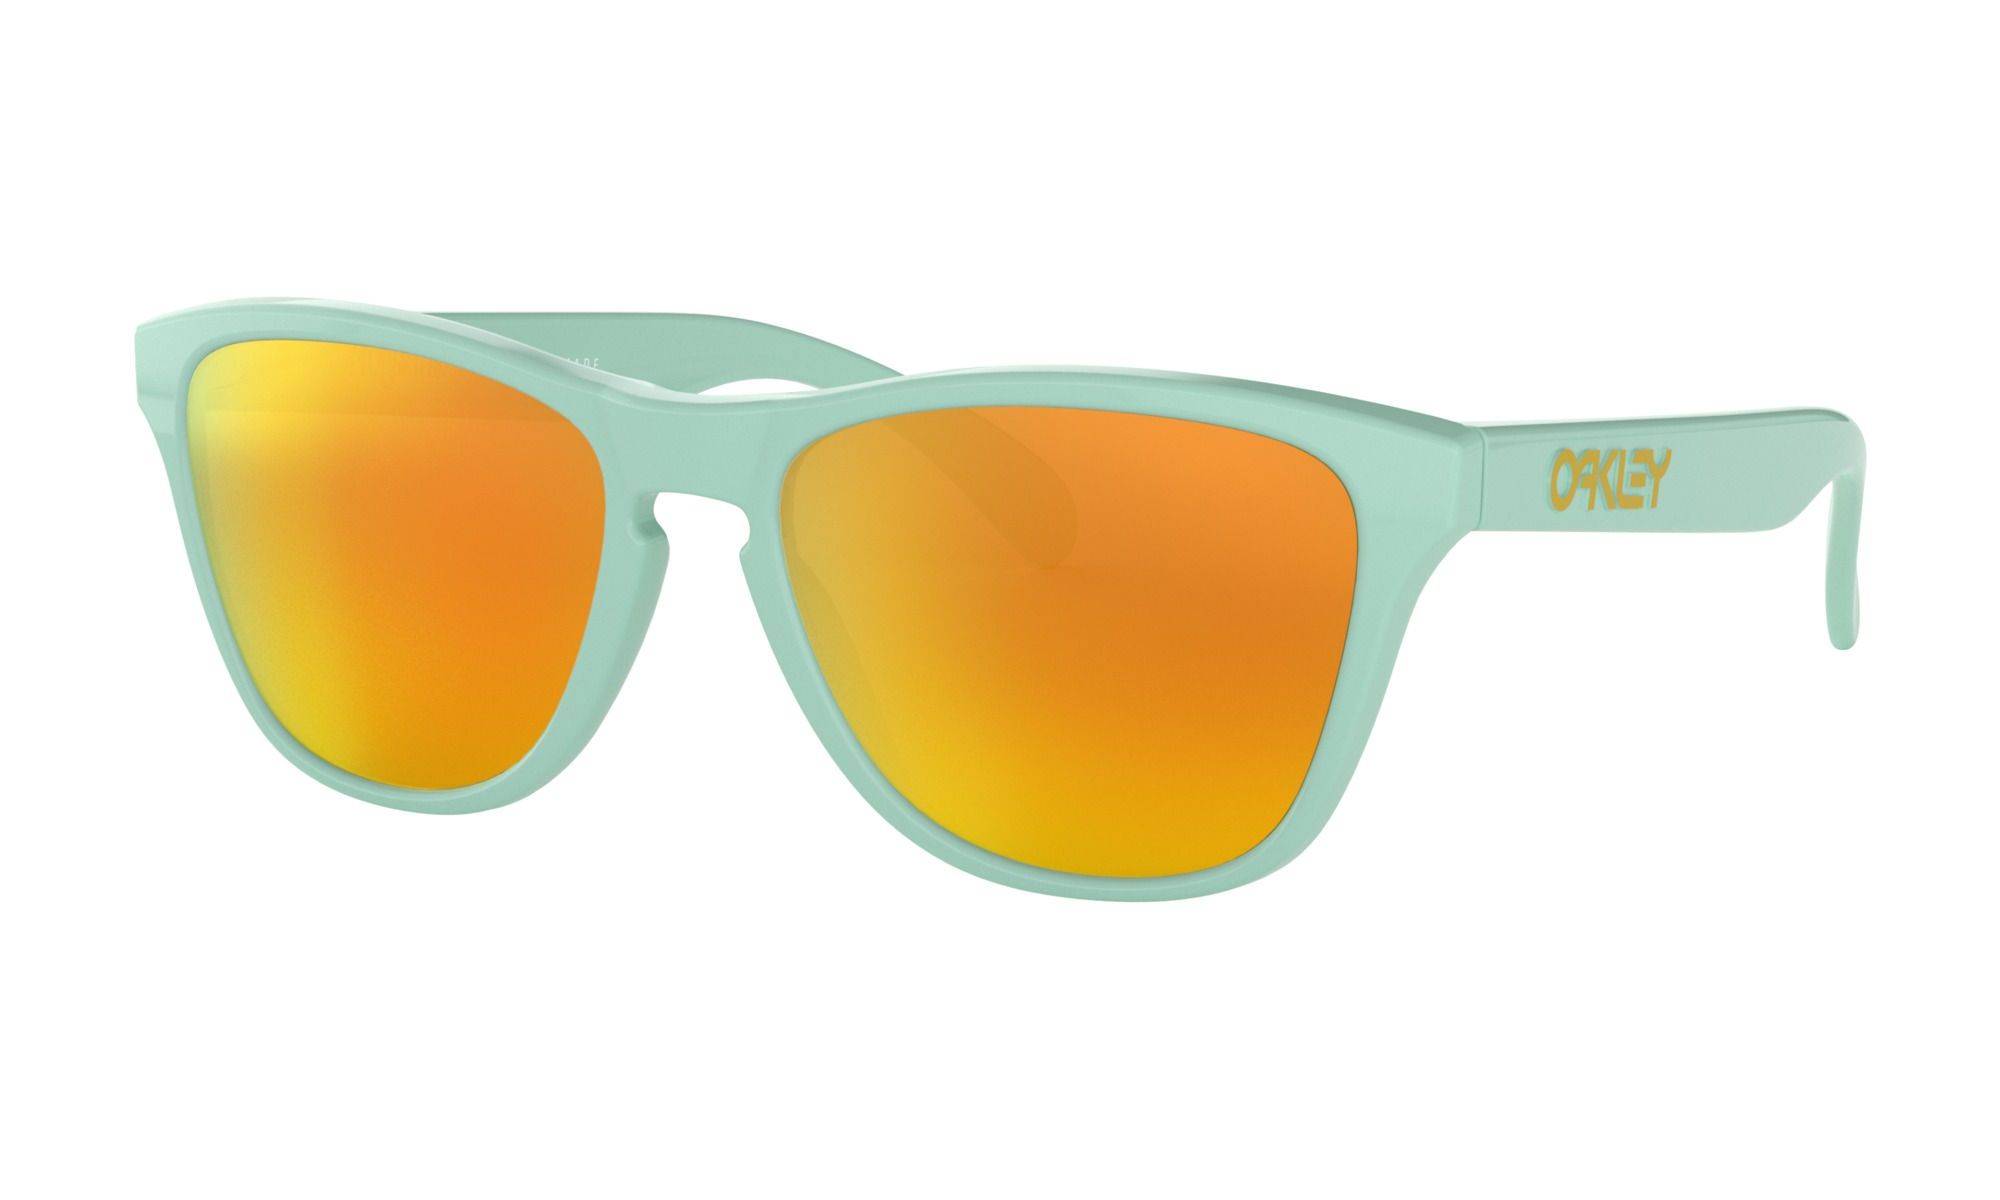 8ba2629b3a Oakley Frogskins XS Sunglasses Review